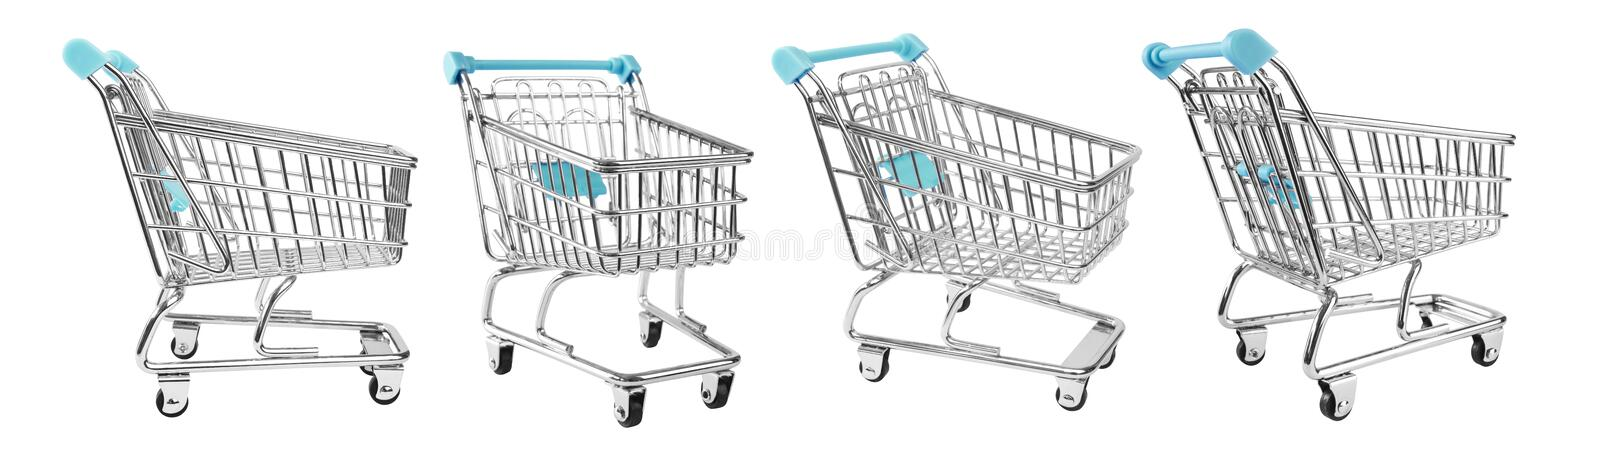 Shopping supermarket cart. CLIPPING PATHS included stock illustration